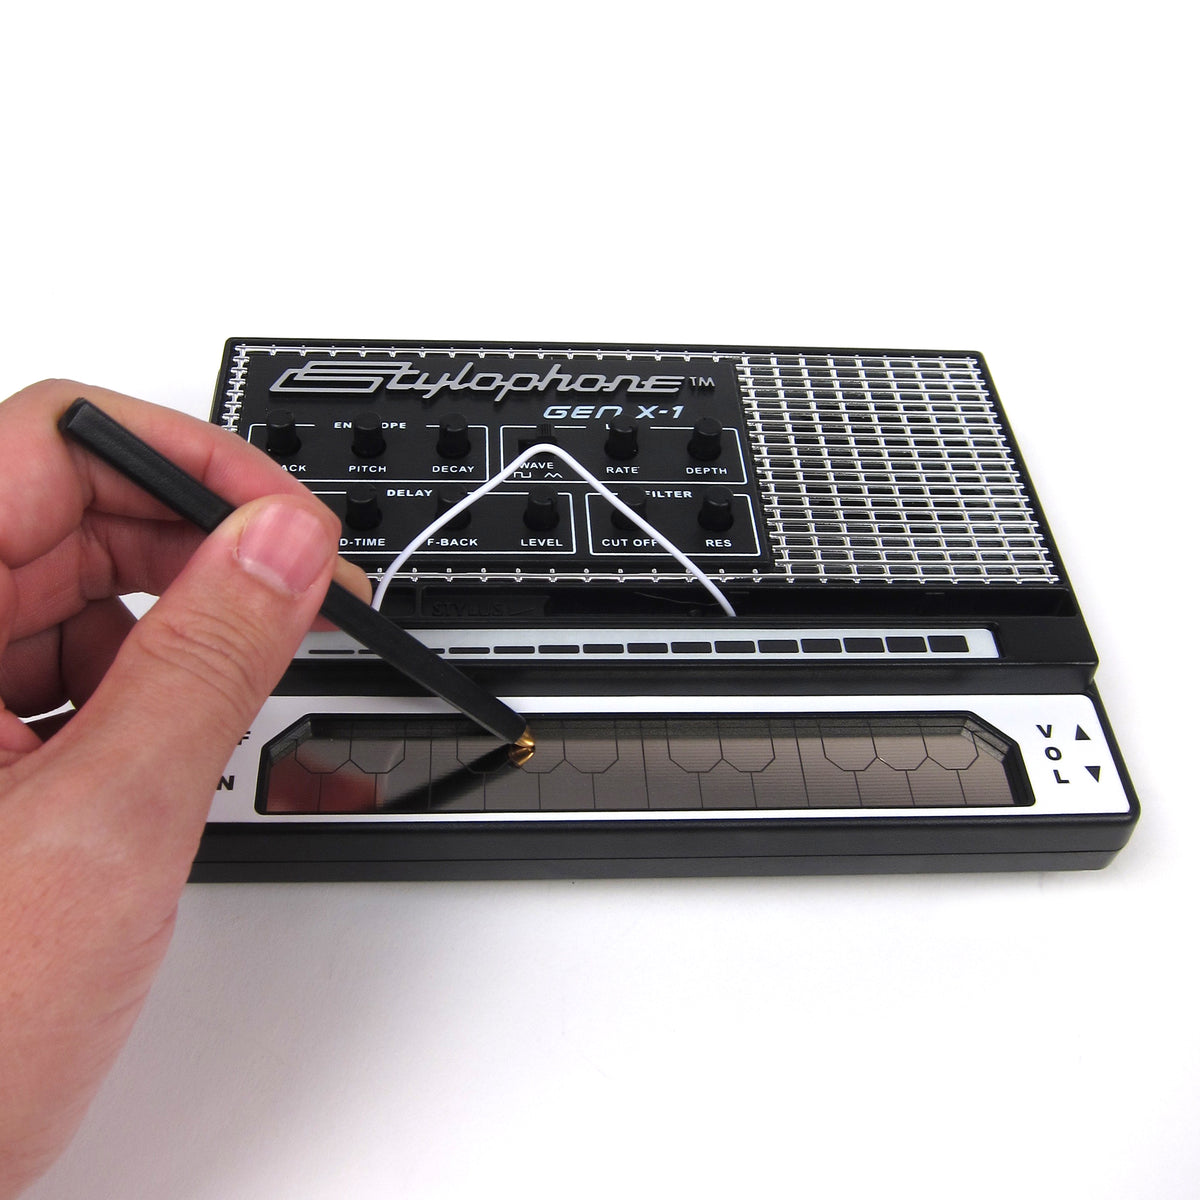 Stylophone Gen X-1 portable synthesizer